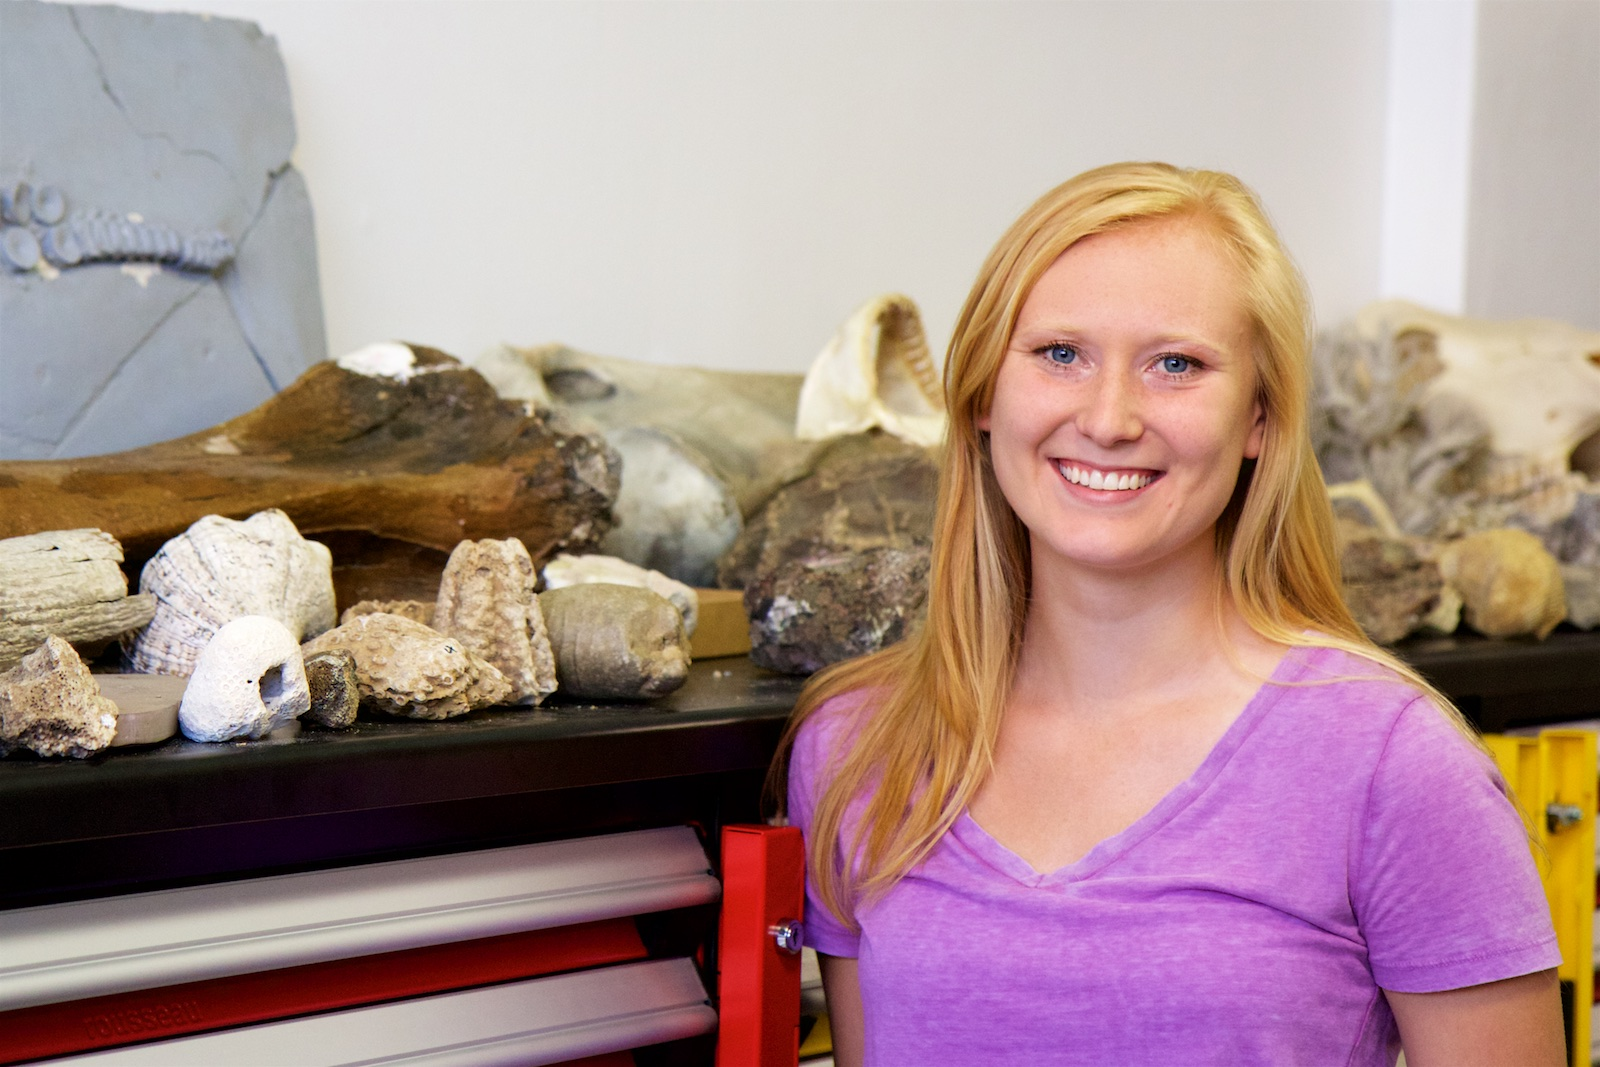 Portrait style photo of Brittany Grosskopf in front of geology samples.